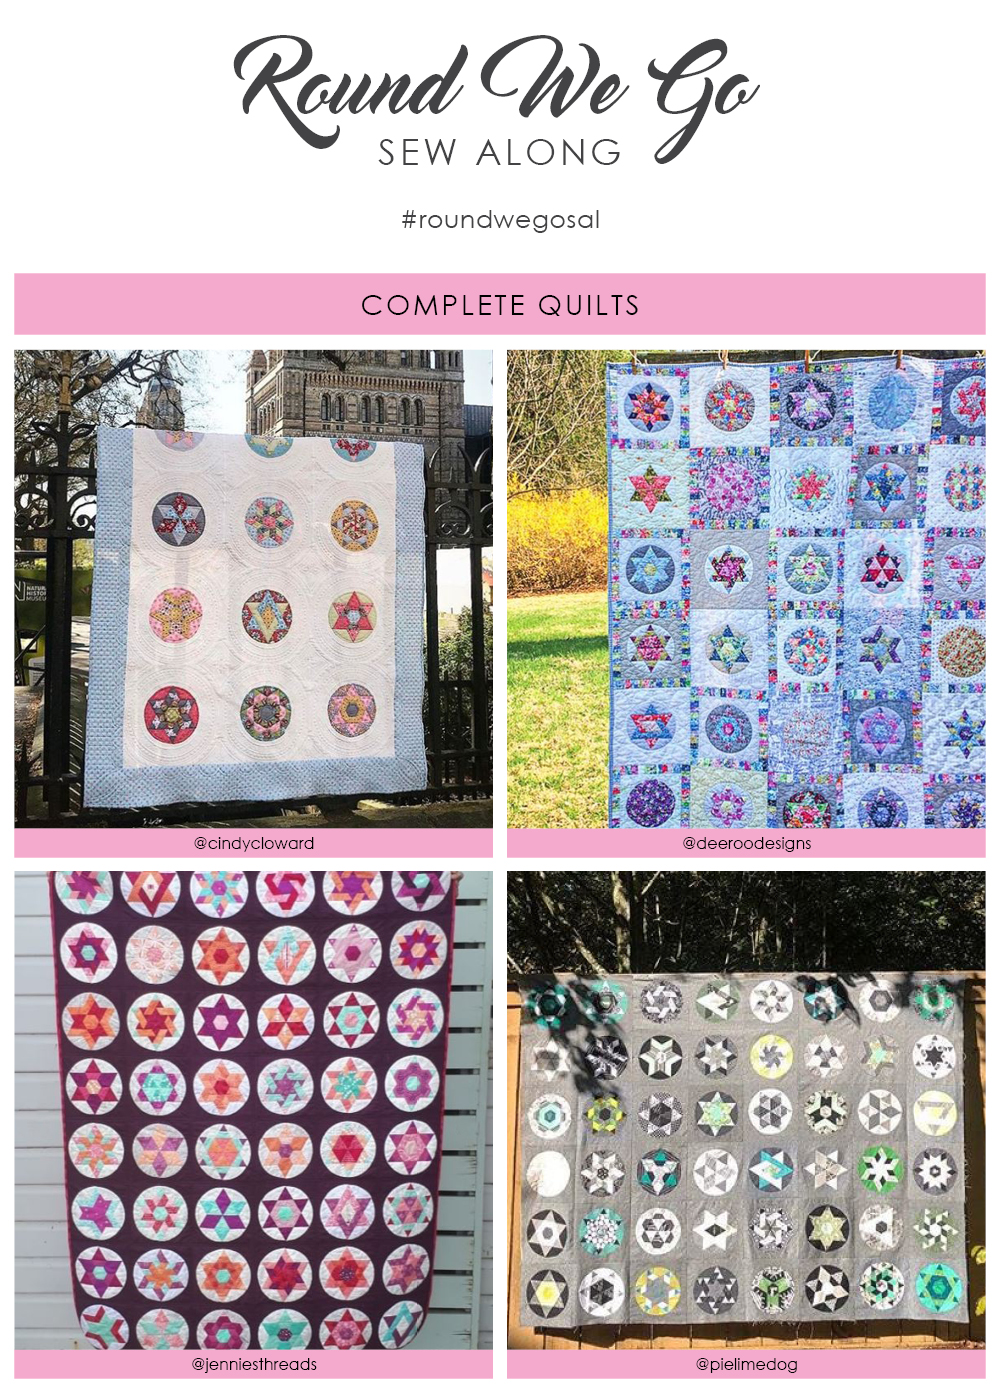 RWG Complete Quilts Showcase 1